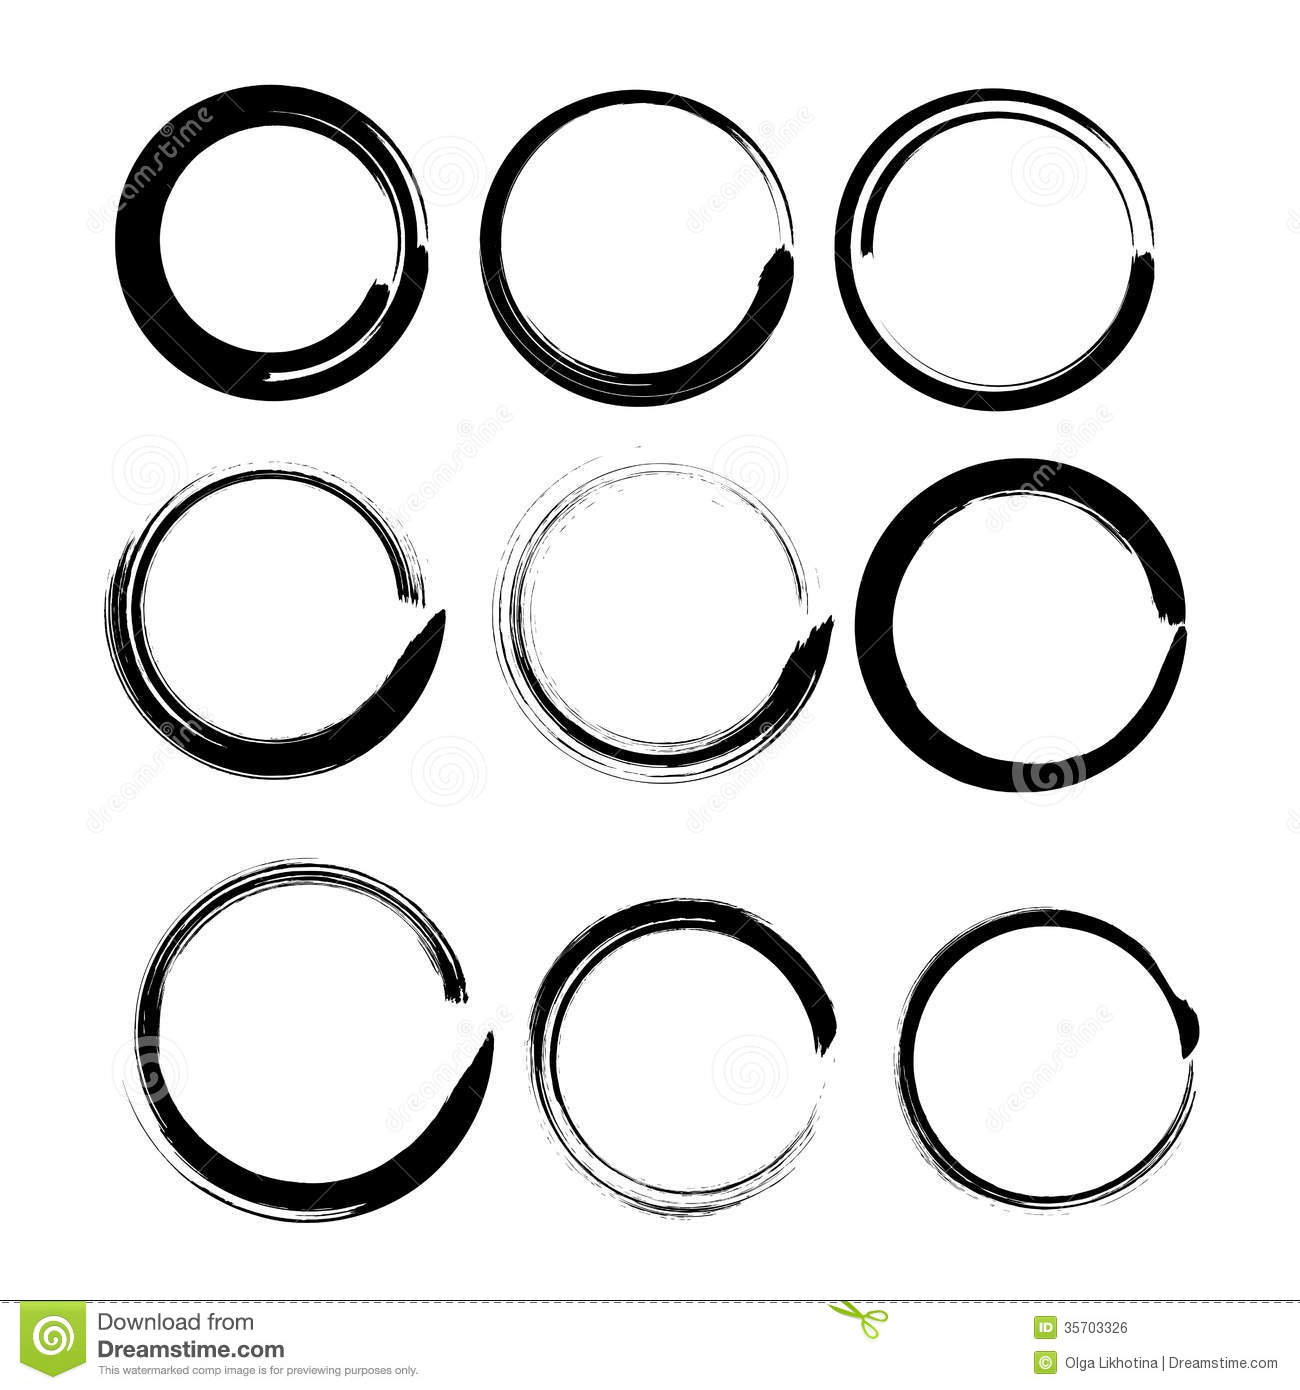 Grunge circles for black paint.